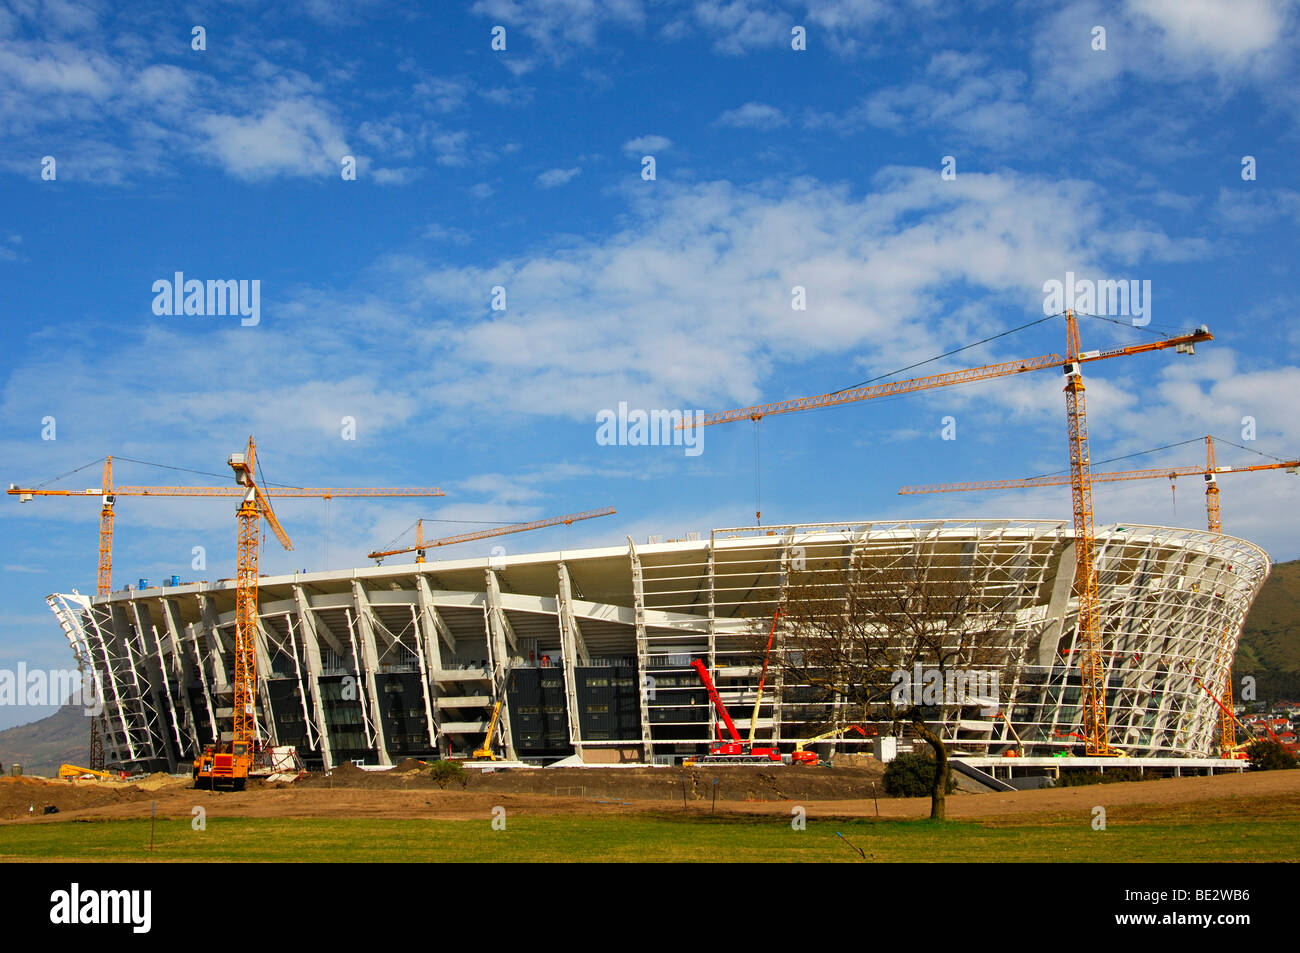 Soccer World Championship 2010, Green Point Soccer Stadium under construction, Cape Town, South Africa - Stock Image